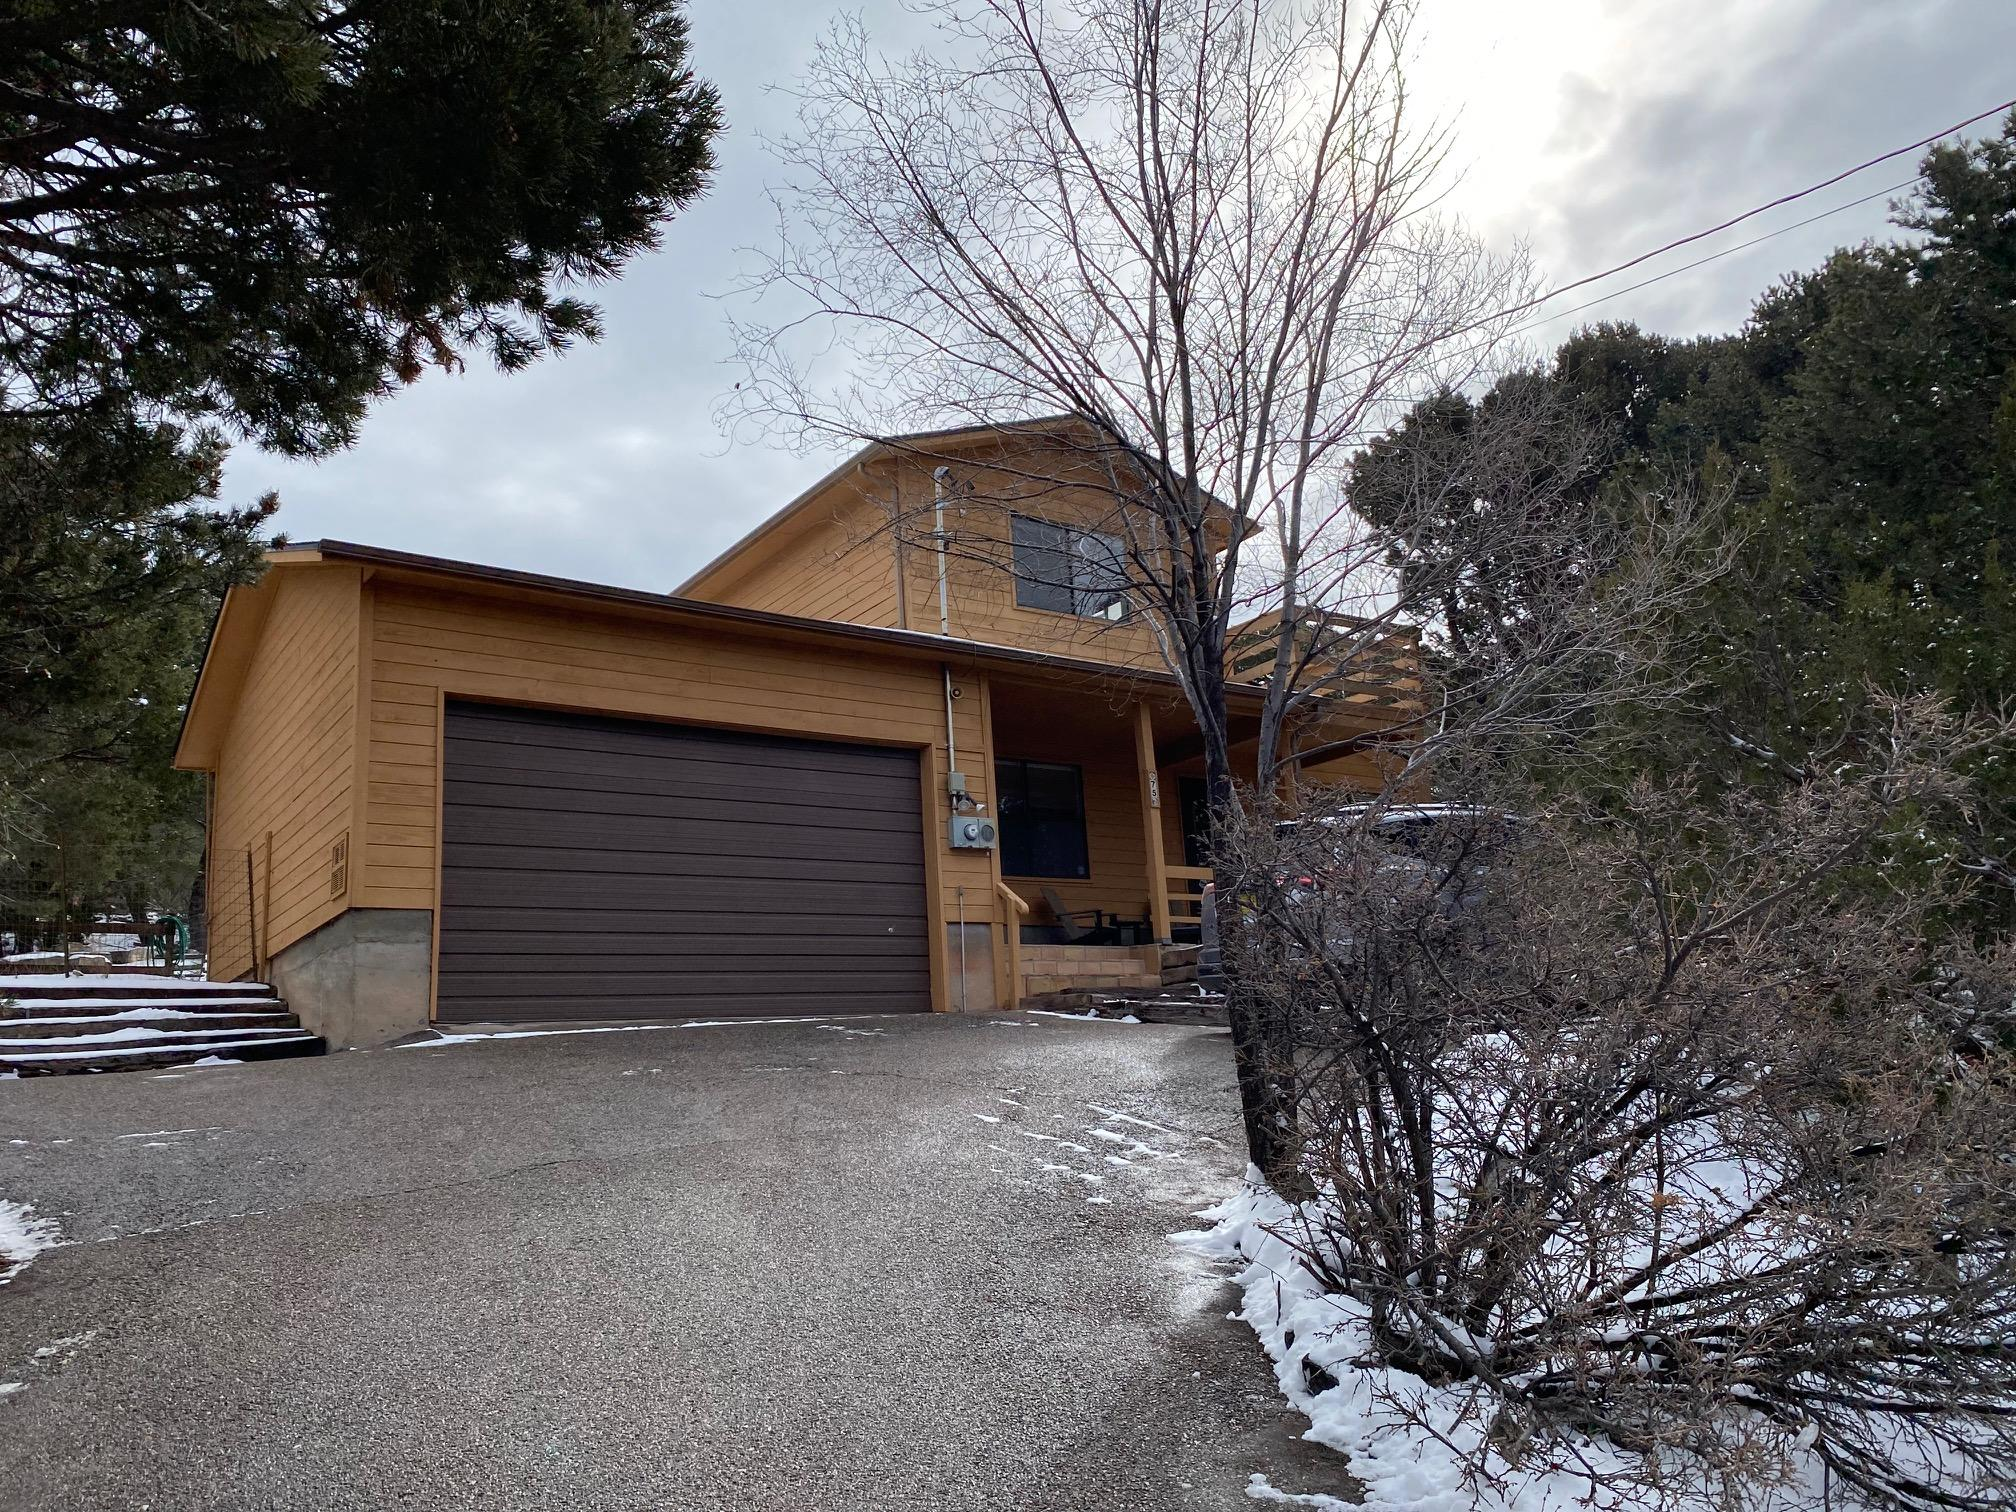 Lovely mountain home that just might check all your boxes.  Views-wooded- brick floors- bright- wood stove-tongue and groove vaulted beamed ceiling-2 car garage-paved road- asphalt driveway-patio-southern exposure.  This charming home had a new roof in 2020, water heater in 2017, exterior stain and interior paint in 2017, new well pump and equipment in 2016.  Move in ready after March 31.  Hurry, won't last.